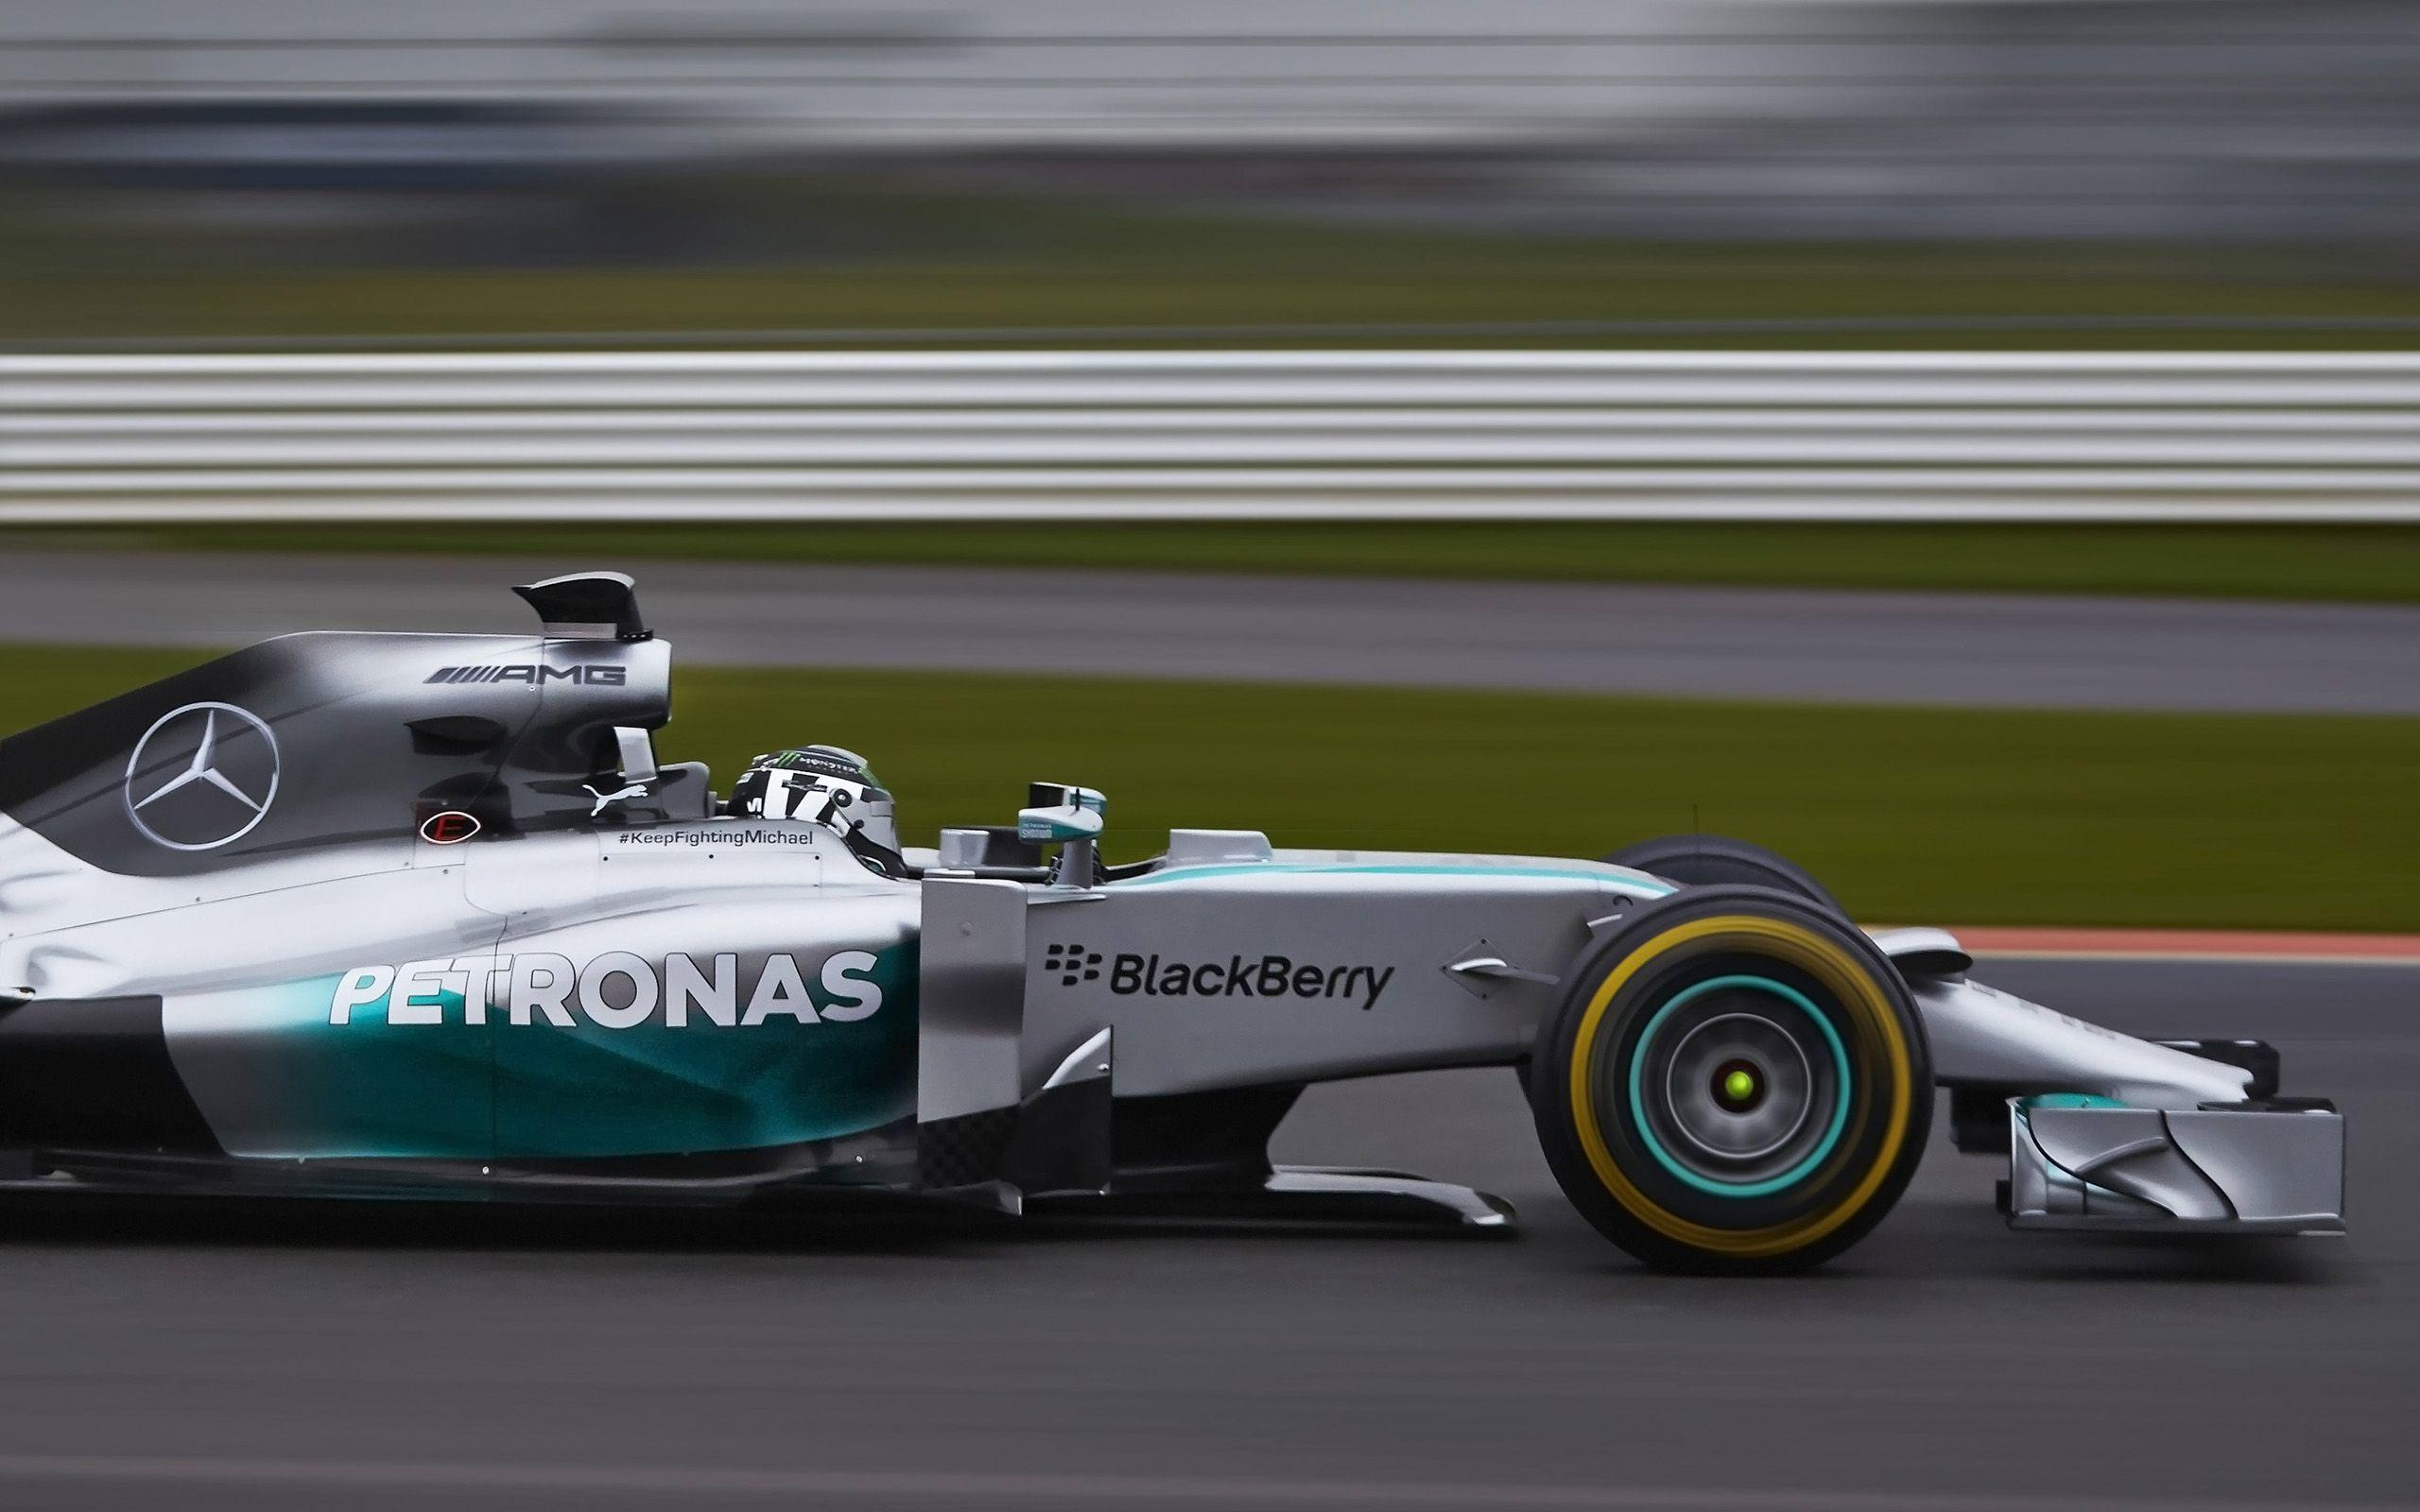 2014 Mercedes AMG Petronas F1 W05 Wallpapers